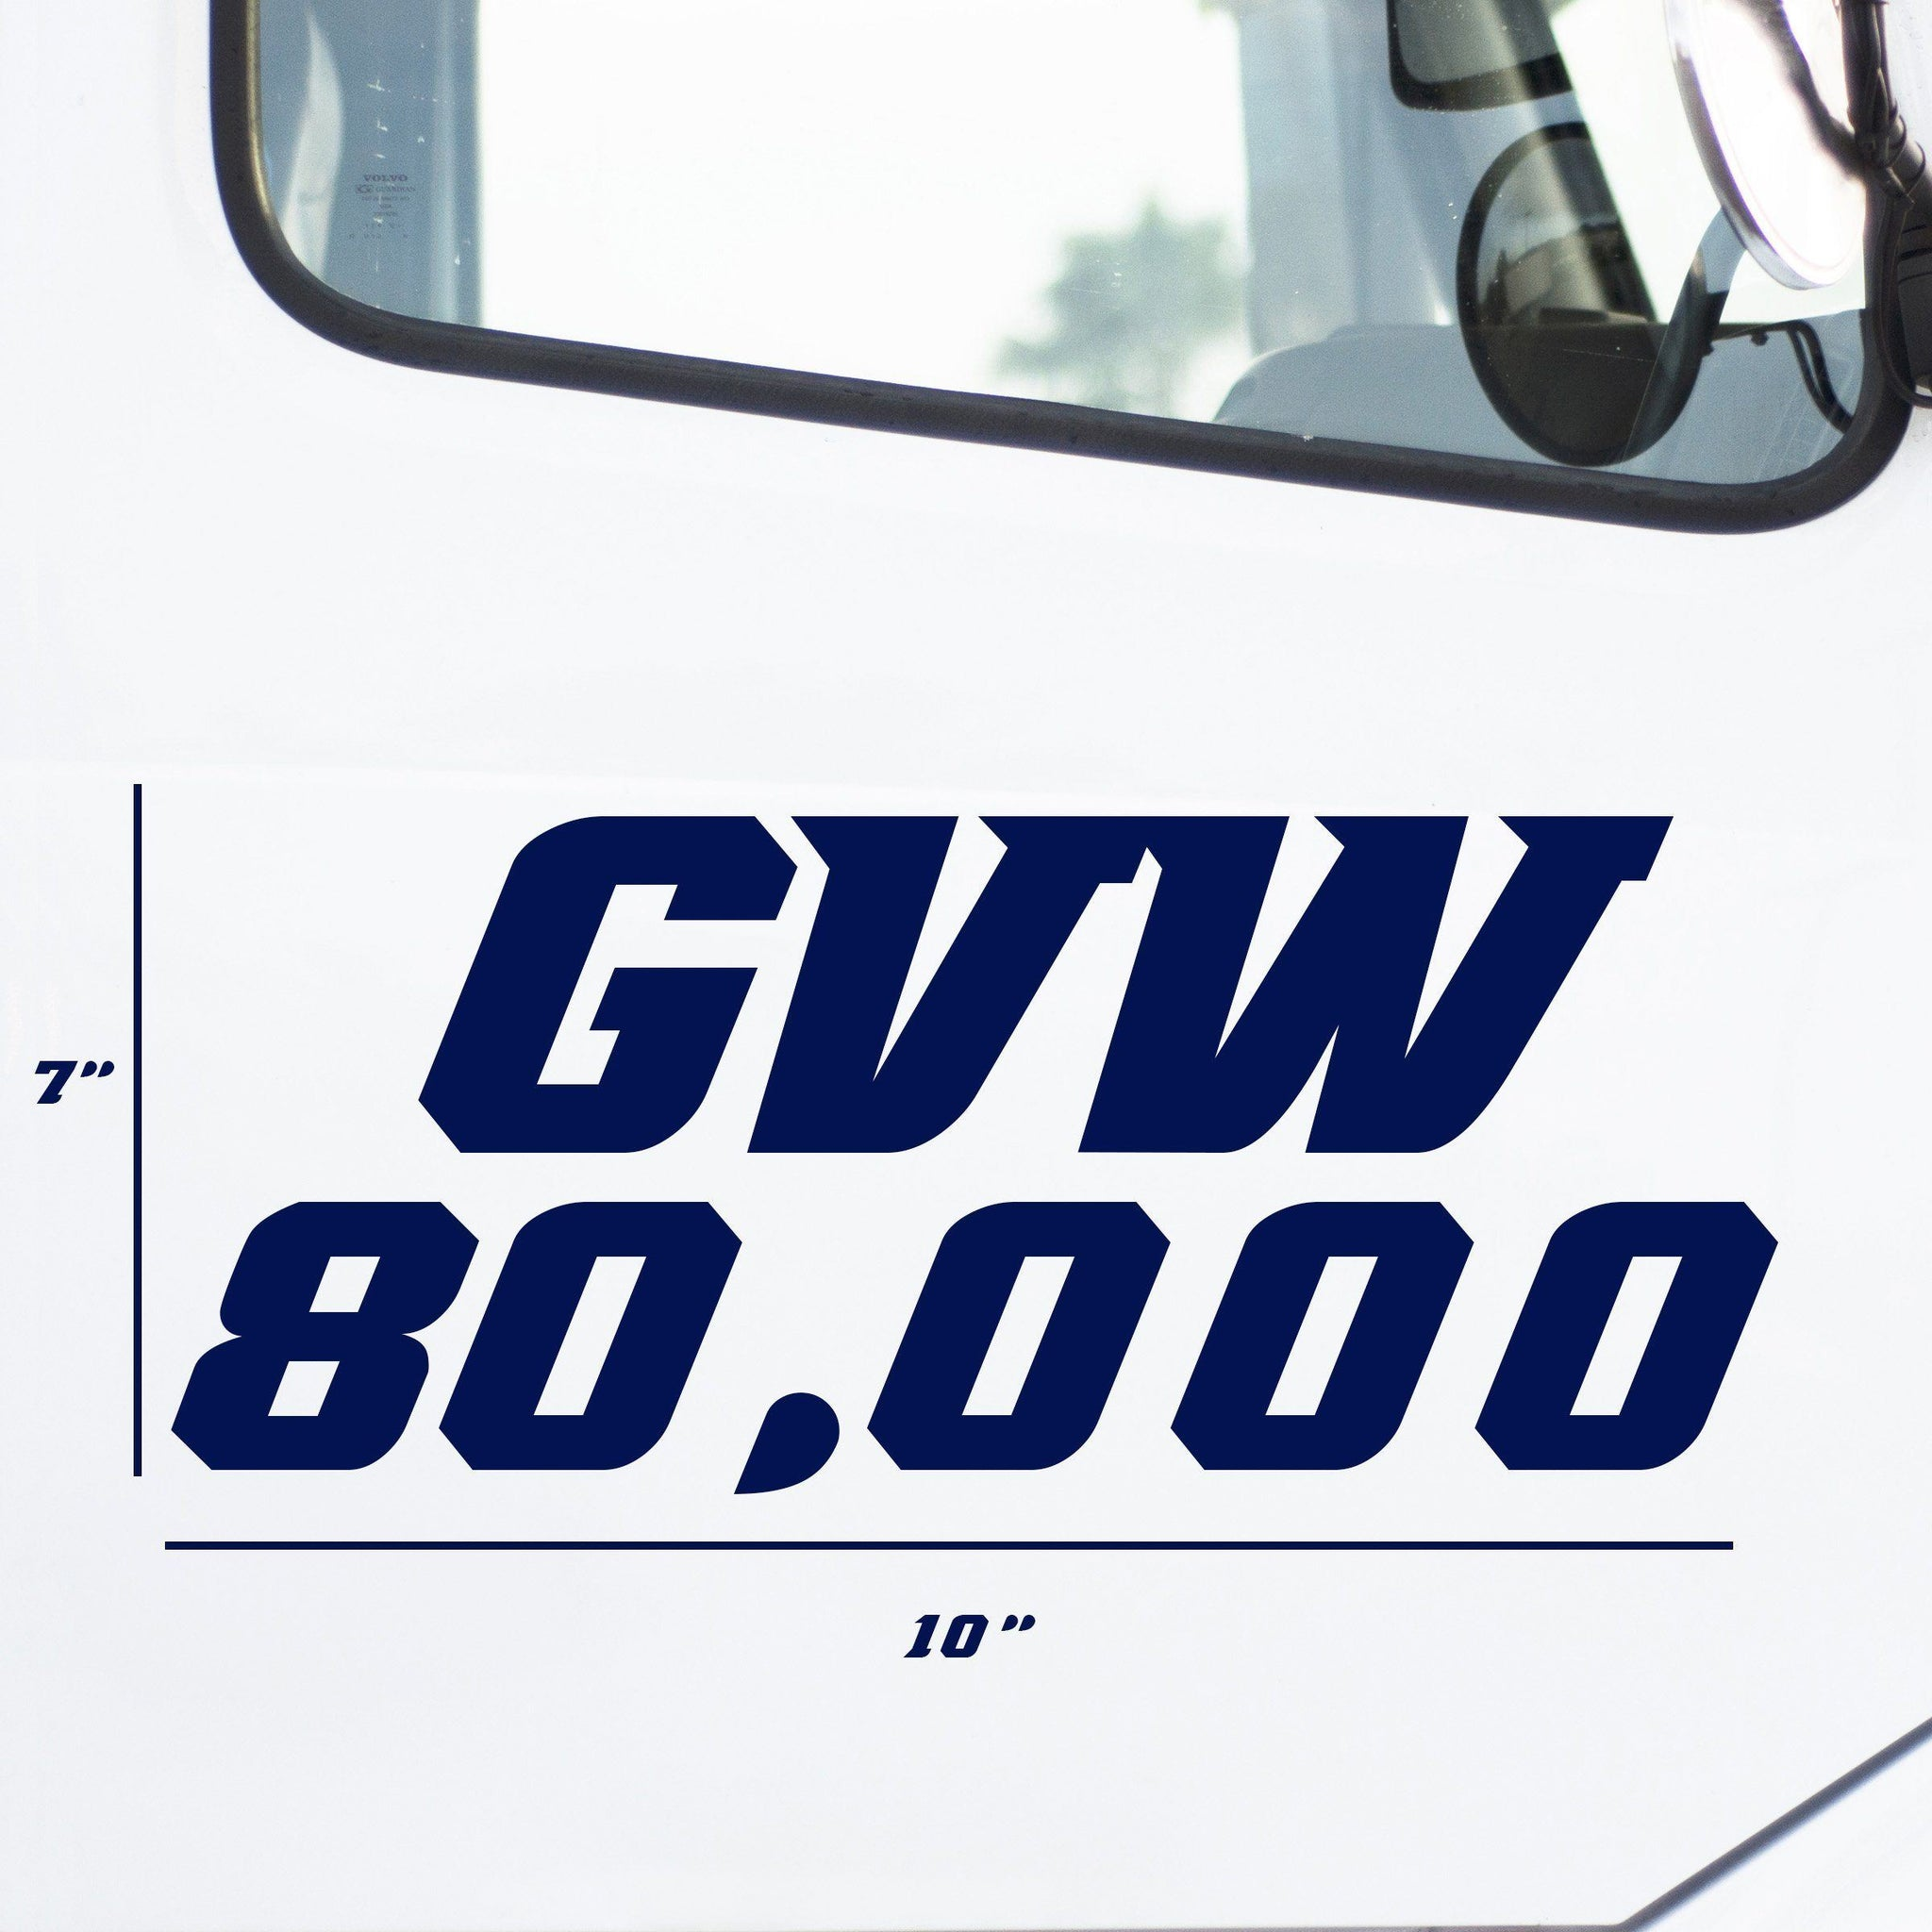 Gross Vehicle Weight (GVW) and Gross Vehicle Weight Rating (GVWR)